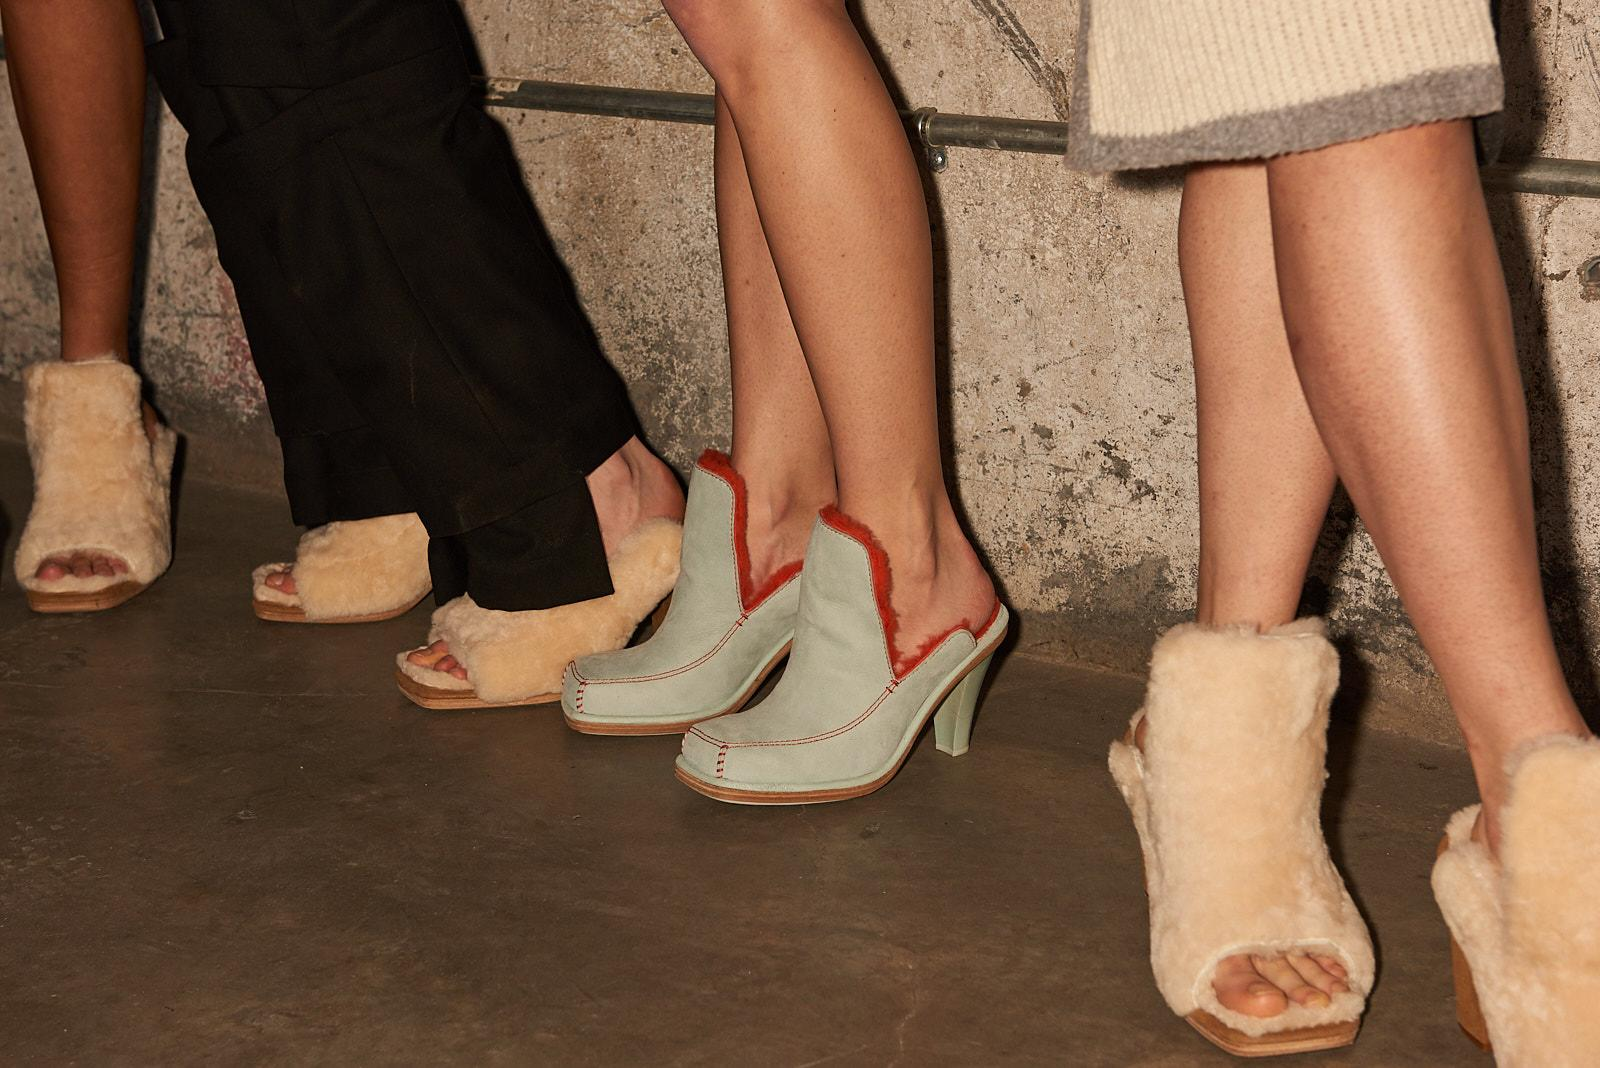 f4cc72ef33 Styles For Women: UGG joins forces with Eckhaus Latta for fall 2019 ...